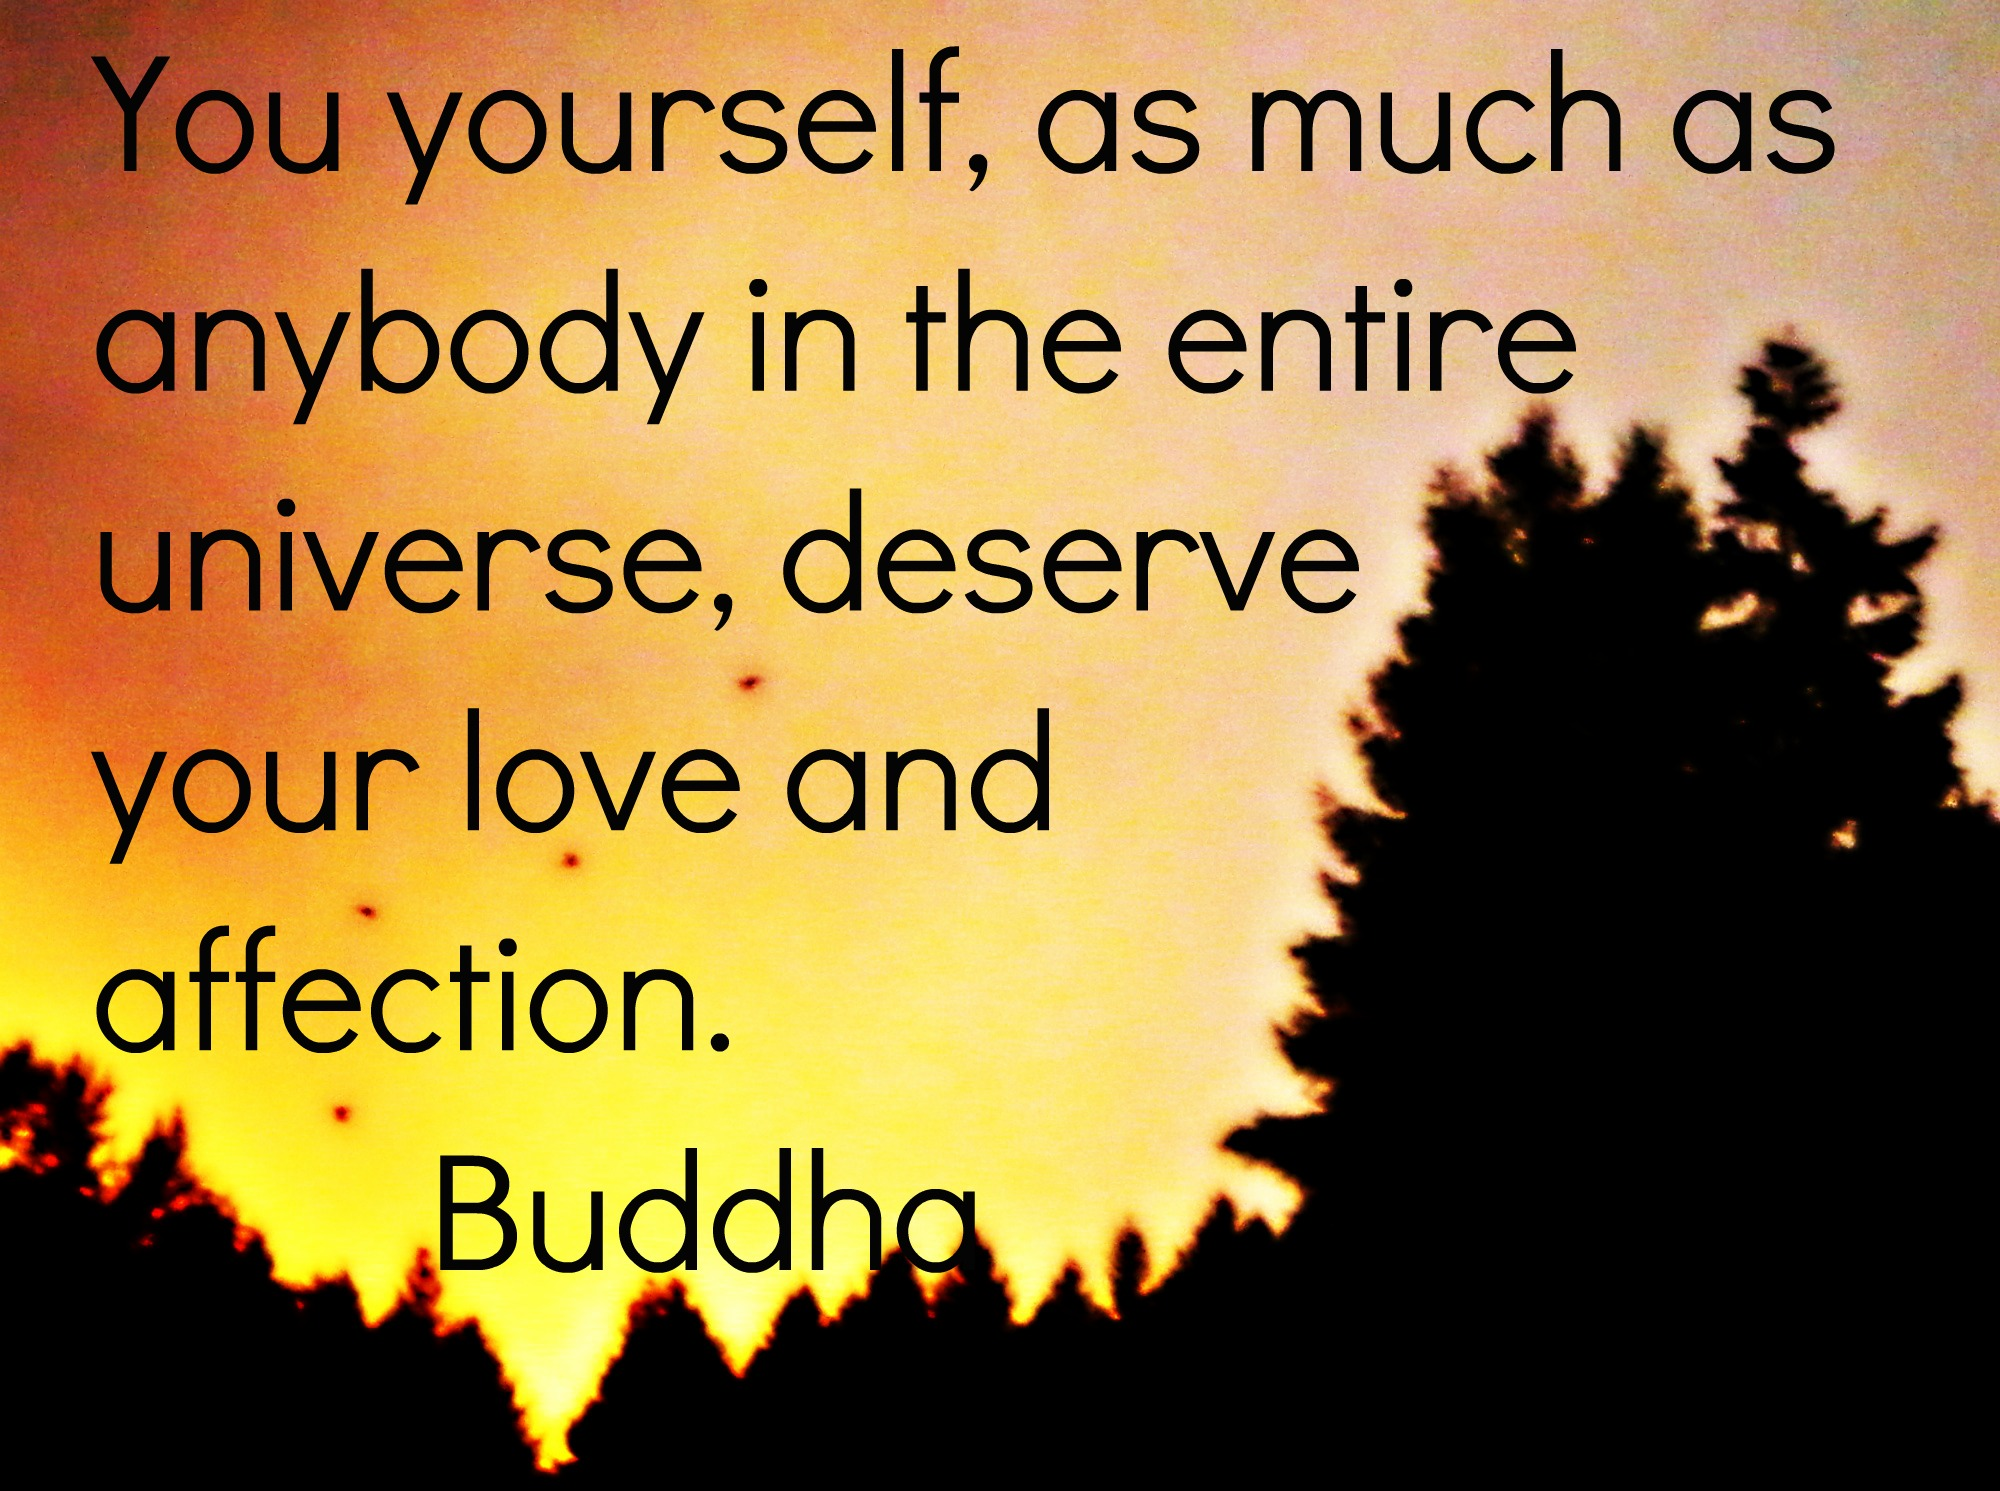 Buddhist Quotes On Love Buddha Quotes On Love And Happiness Buddha Quotes On Happiness